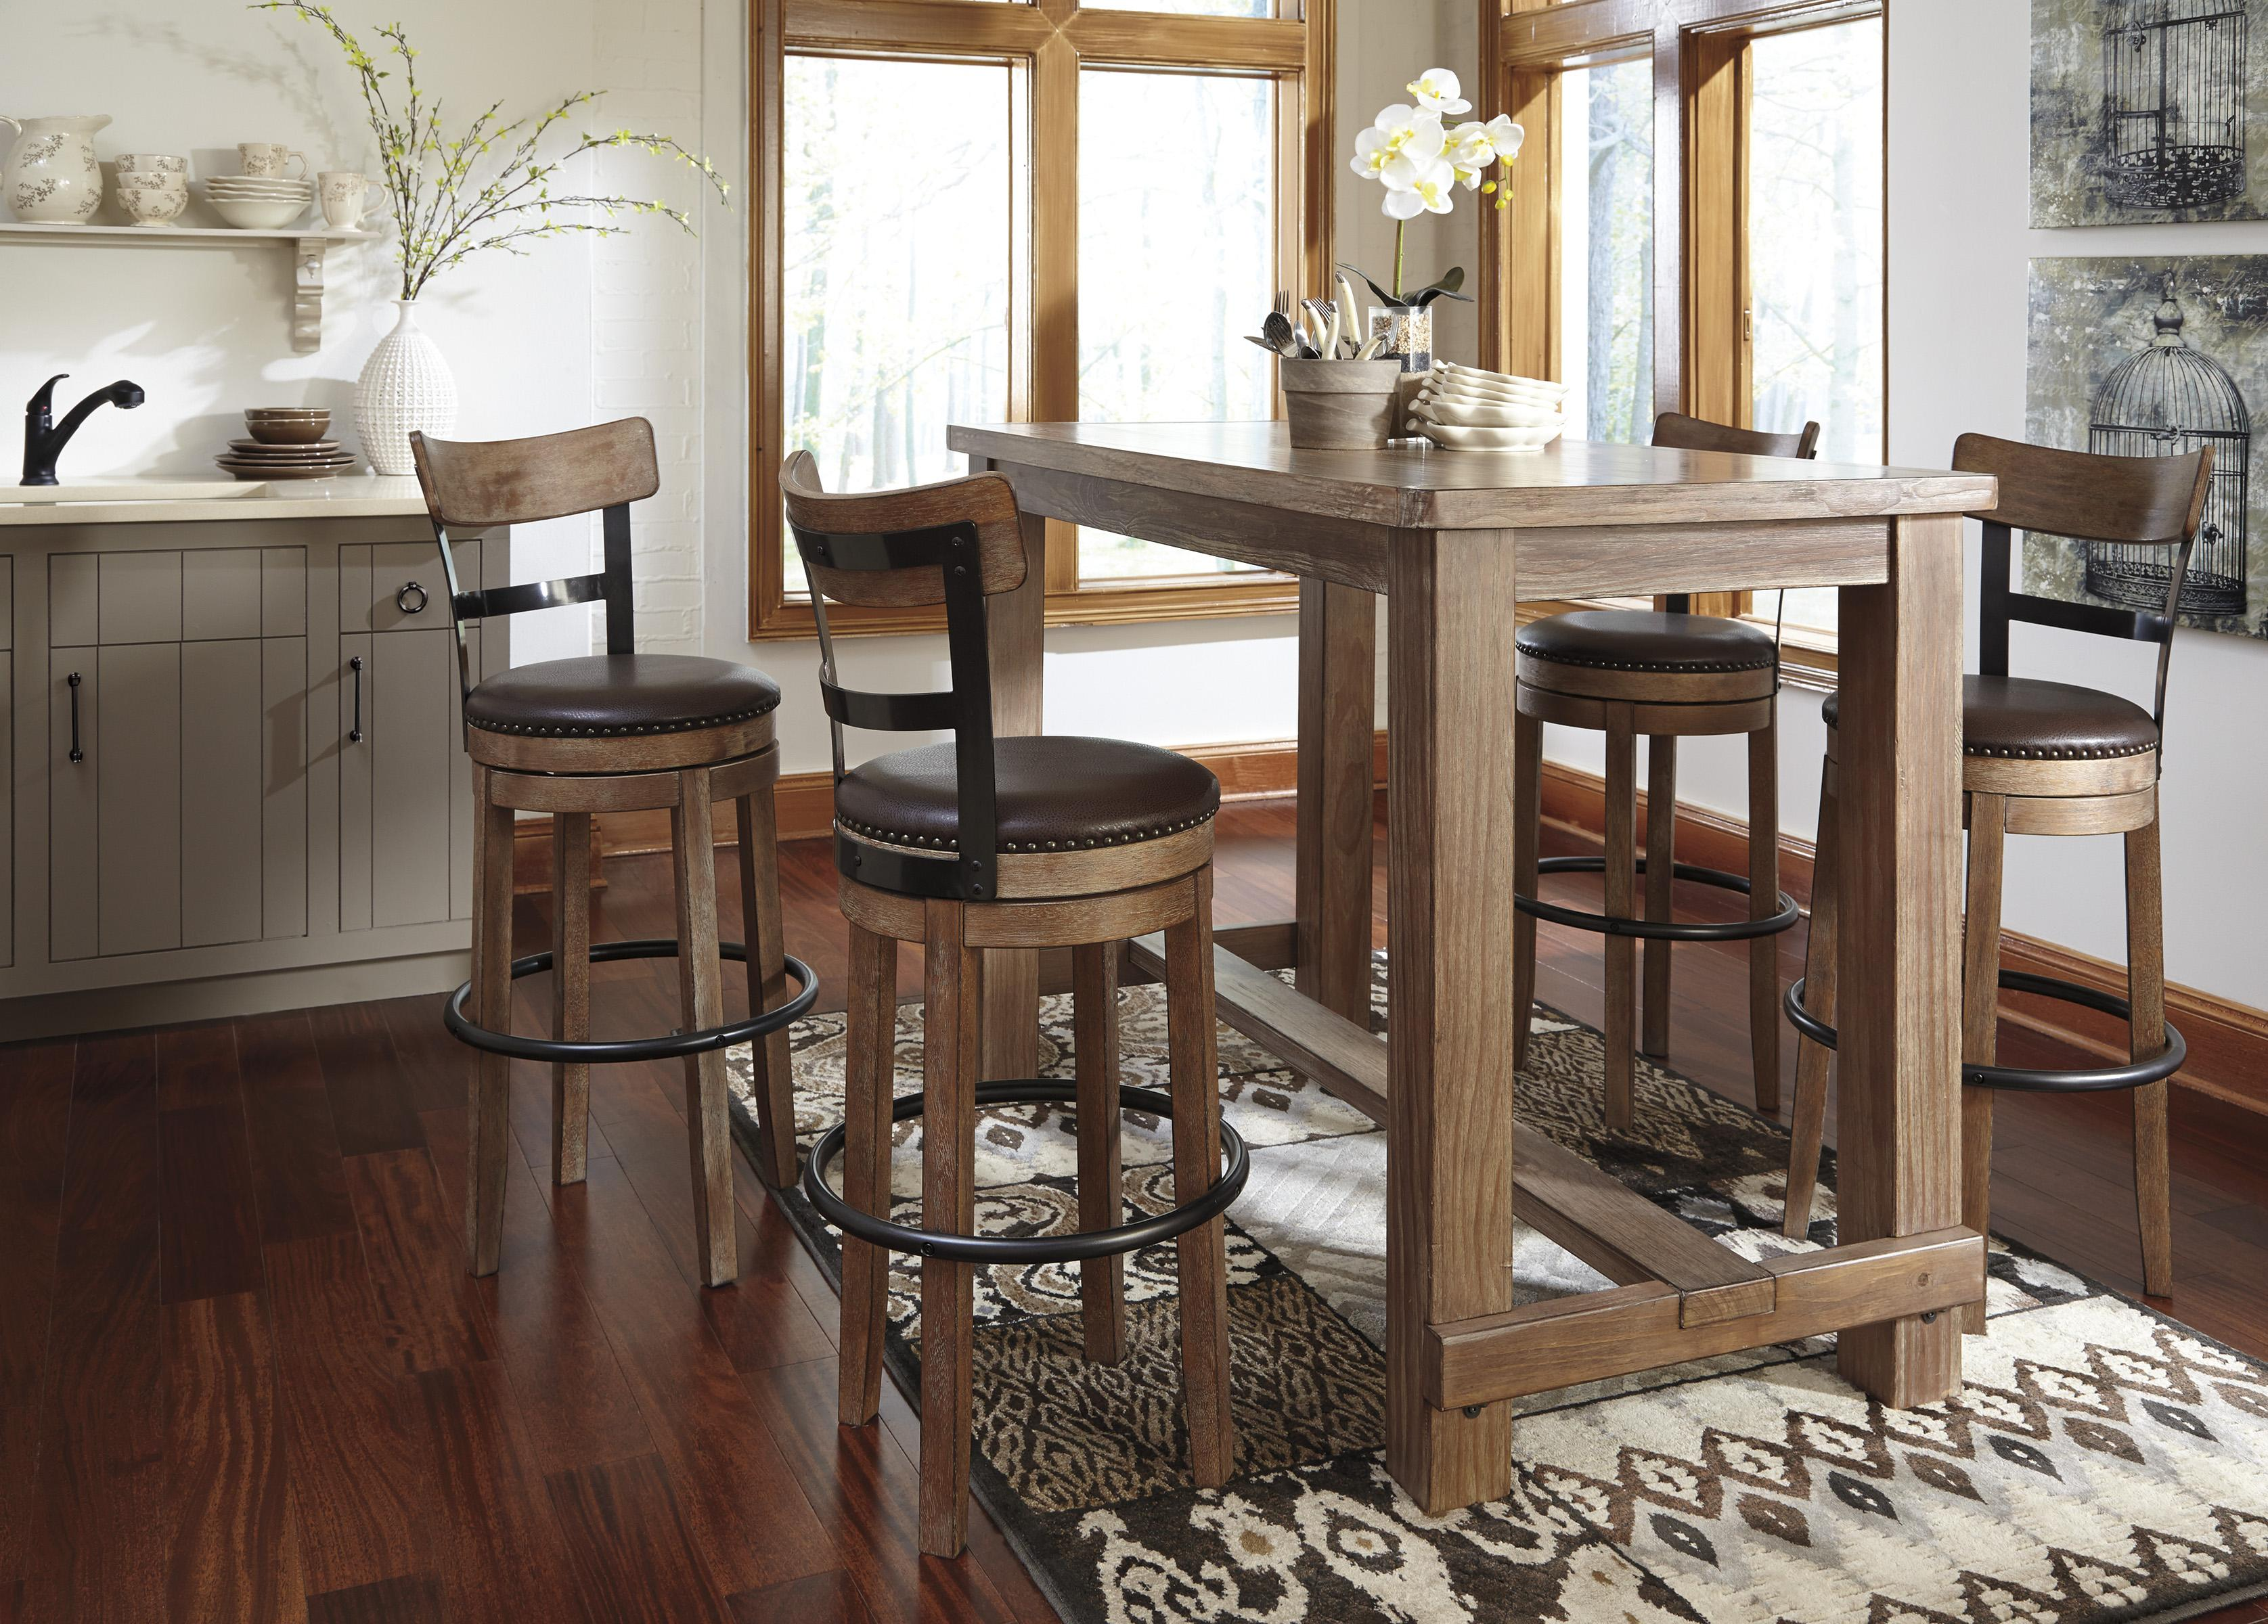 Signature Design By Ashley Pinnadel 5 Piece Bar Table Set With Industrial  Style Adjustable Swivel Stools   Wilsonu0027s Furniture   Pub Table And Stool  Sets ...